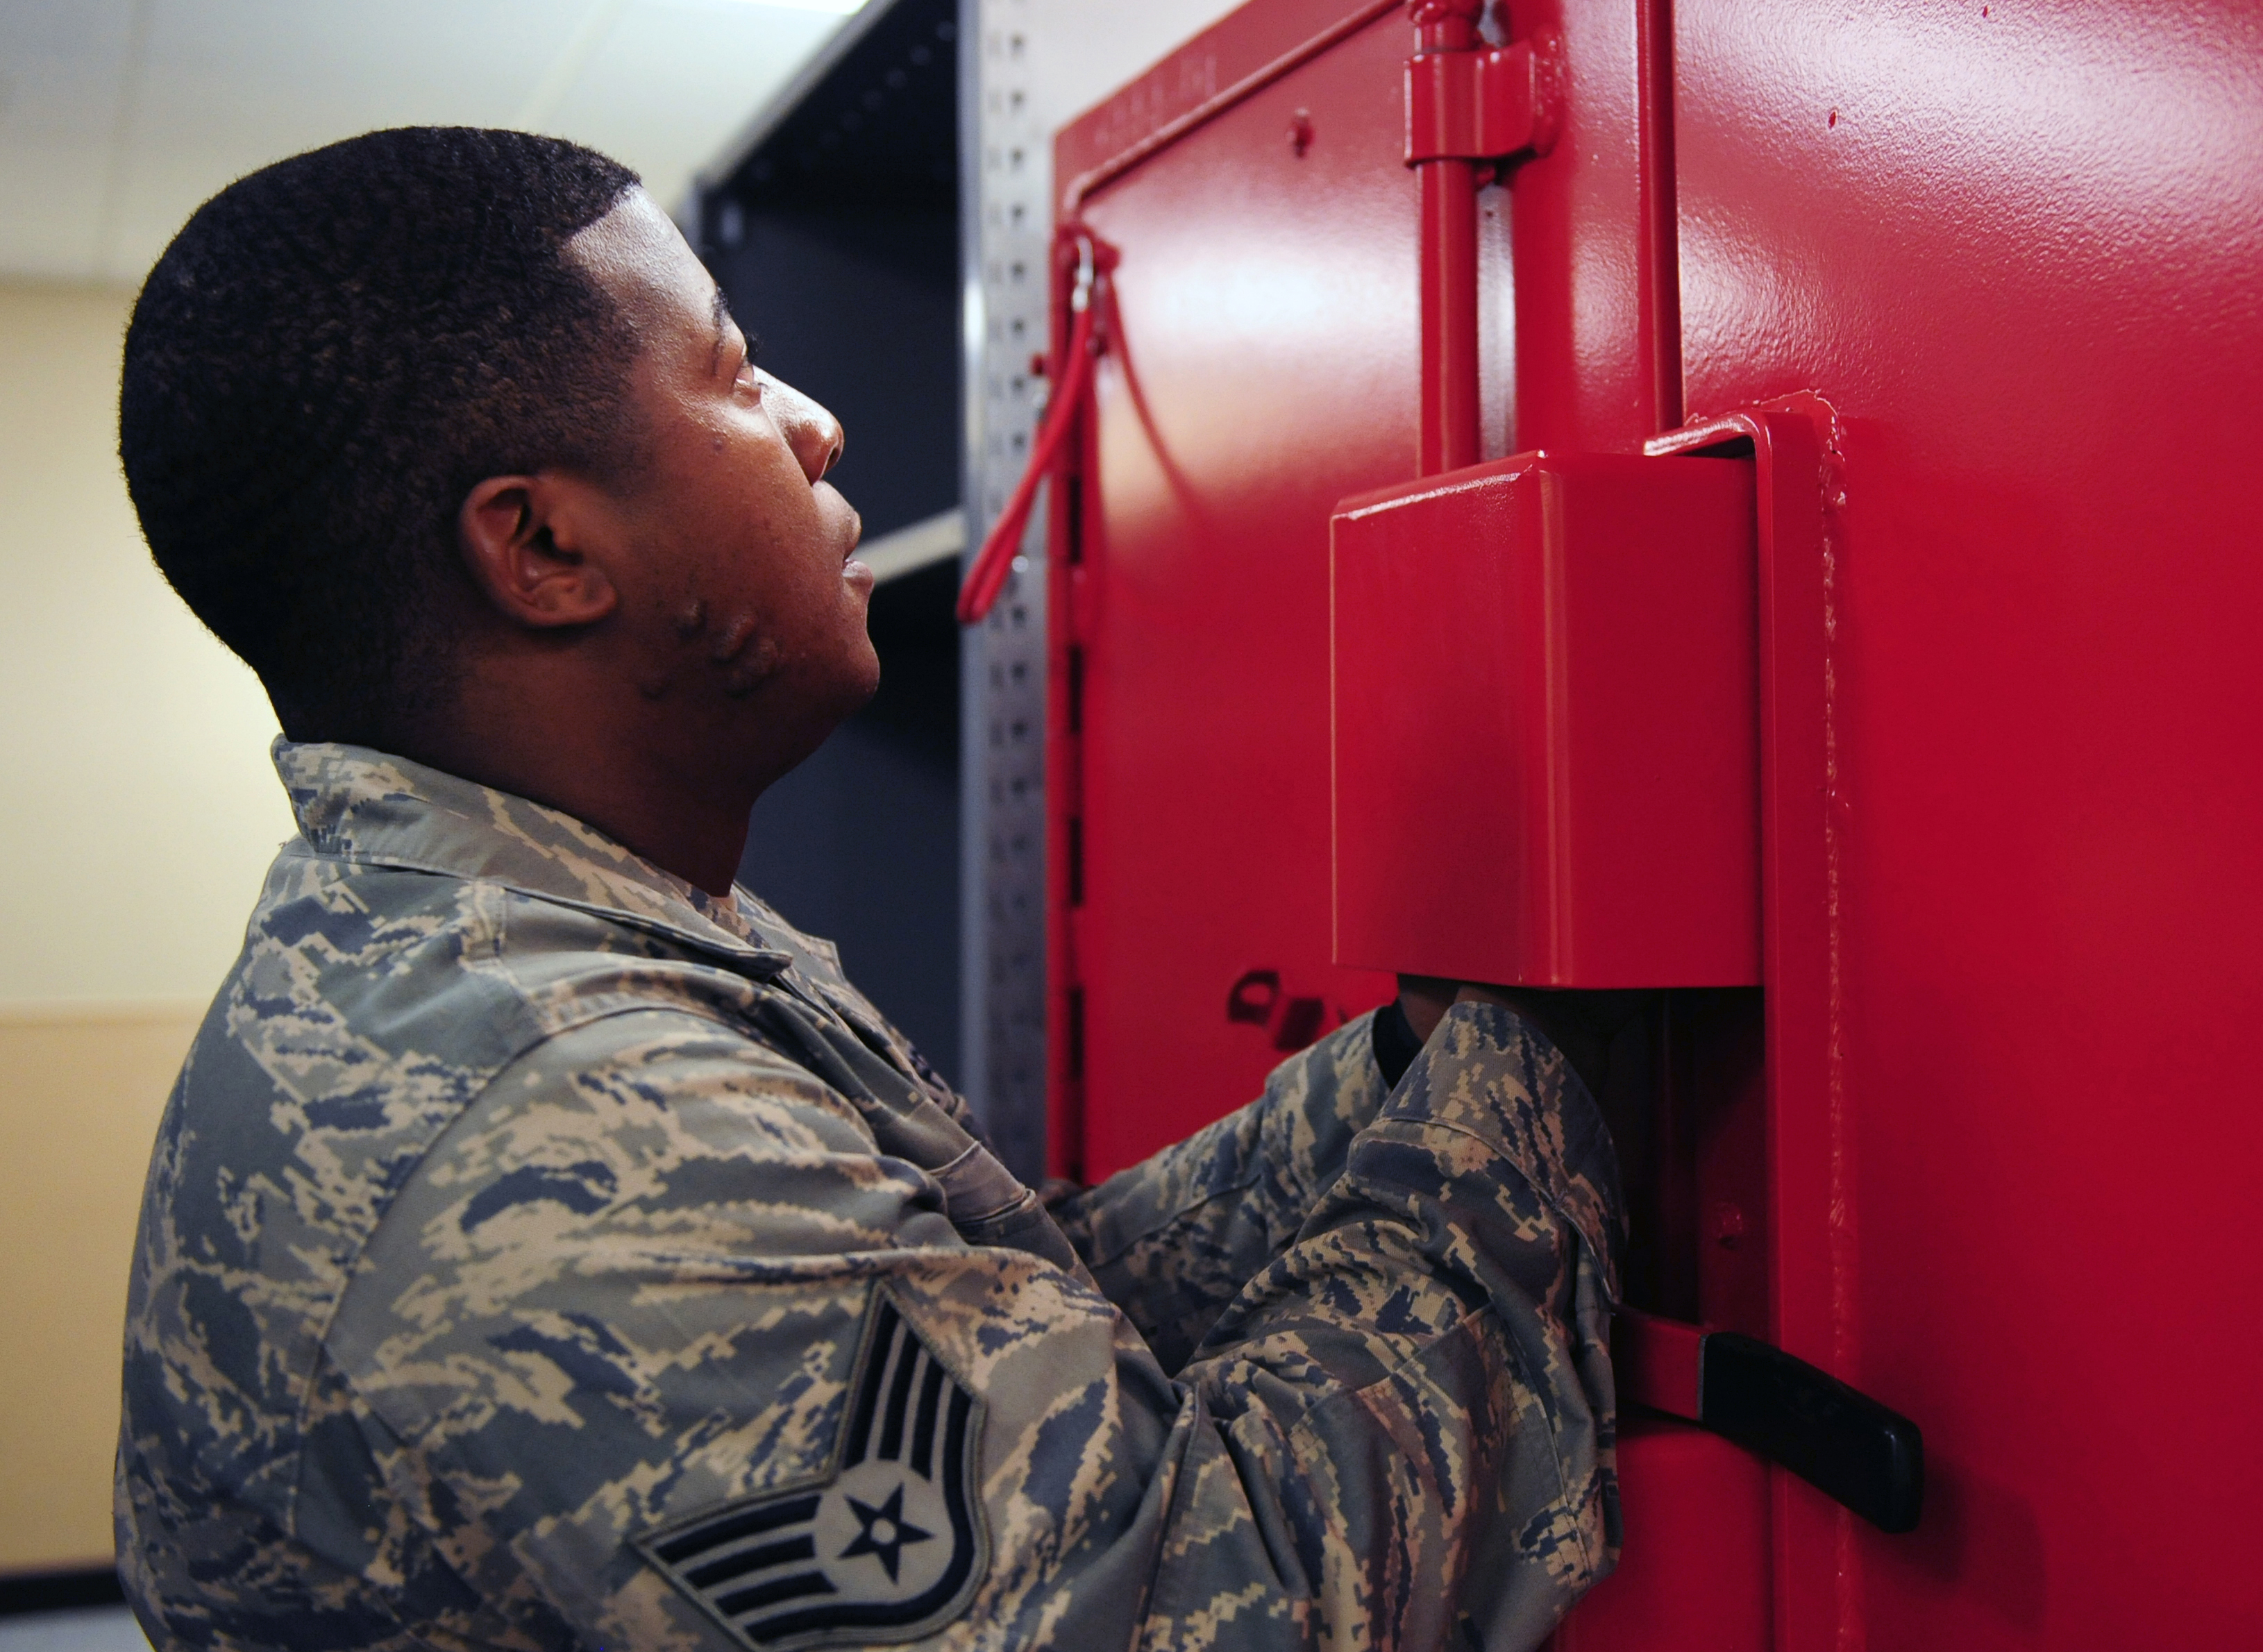 Staff Sgt Smith Opens The New Explosives Cabinet